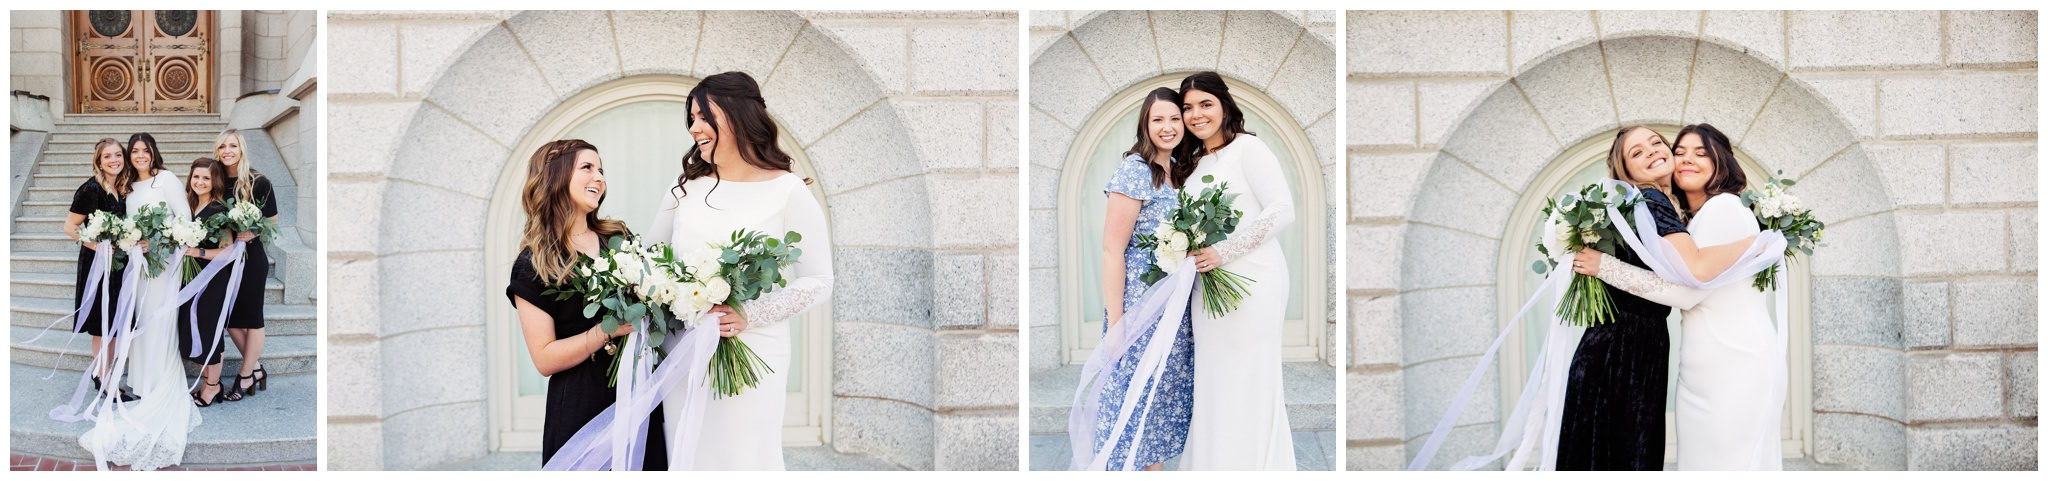 Wedding party pictures at the Salt Lake City Temple in Utah